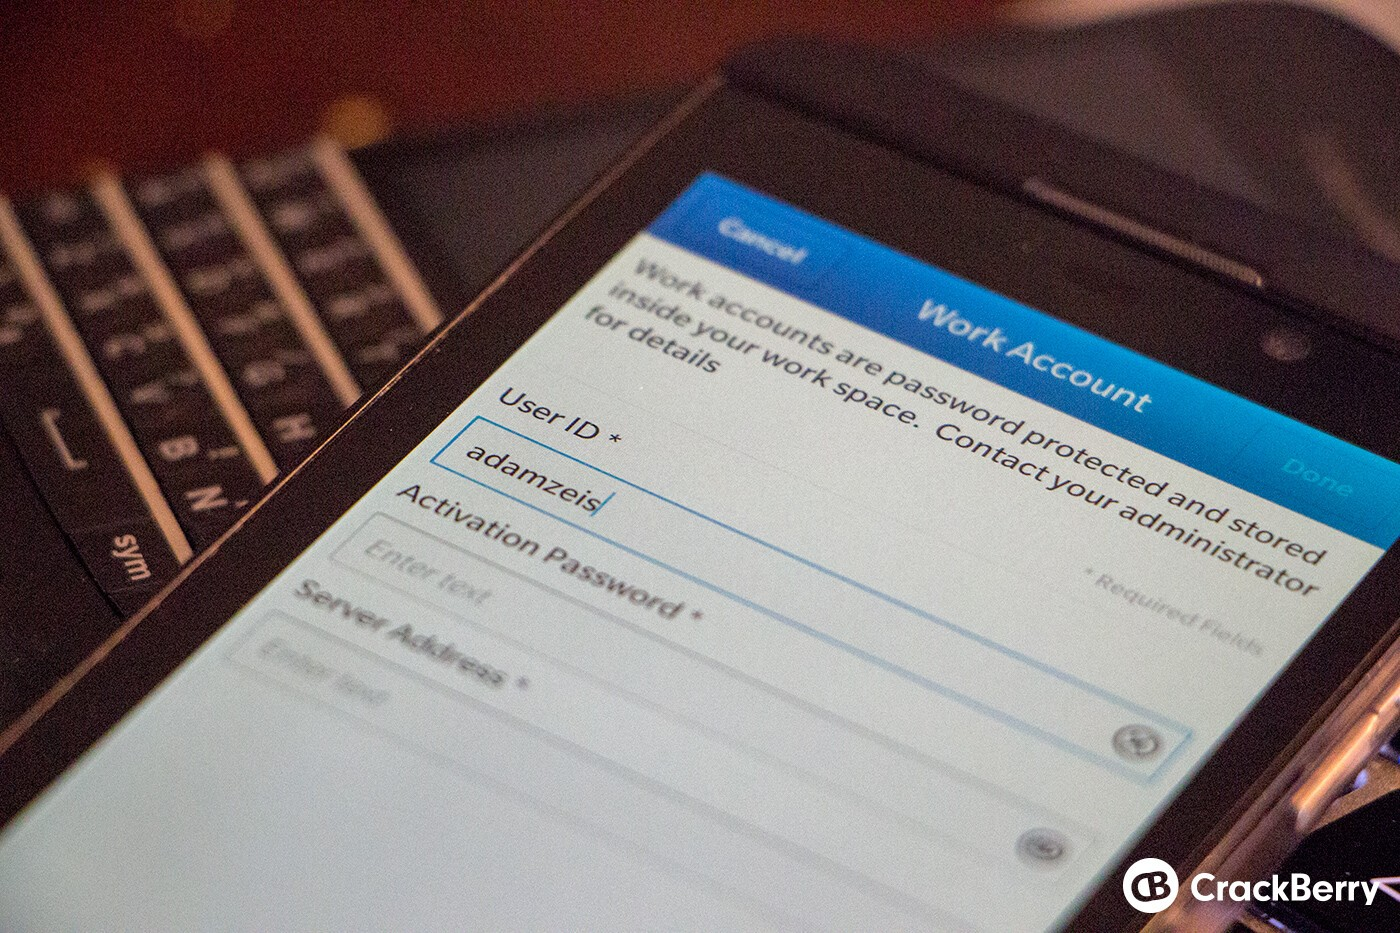 BES Work Account on a BlackBerry Z10